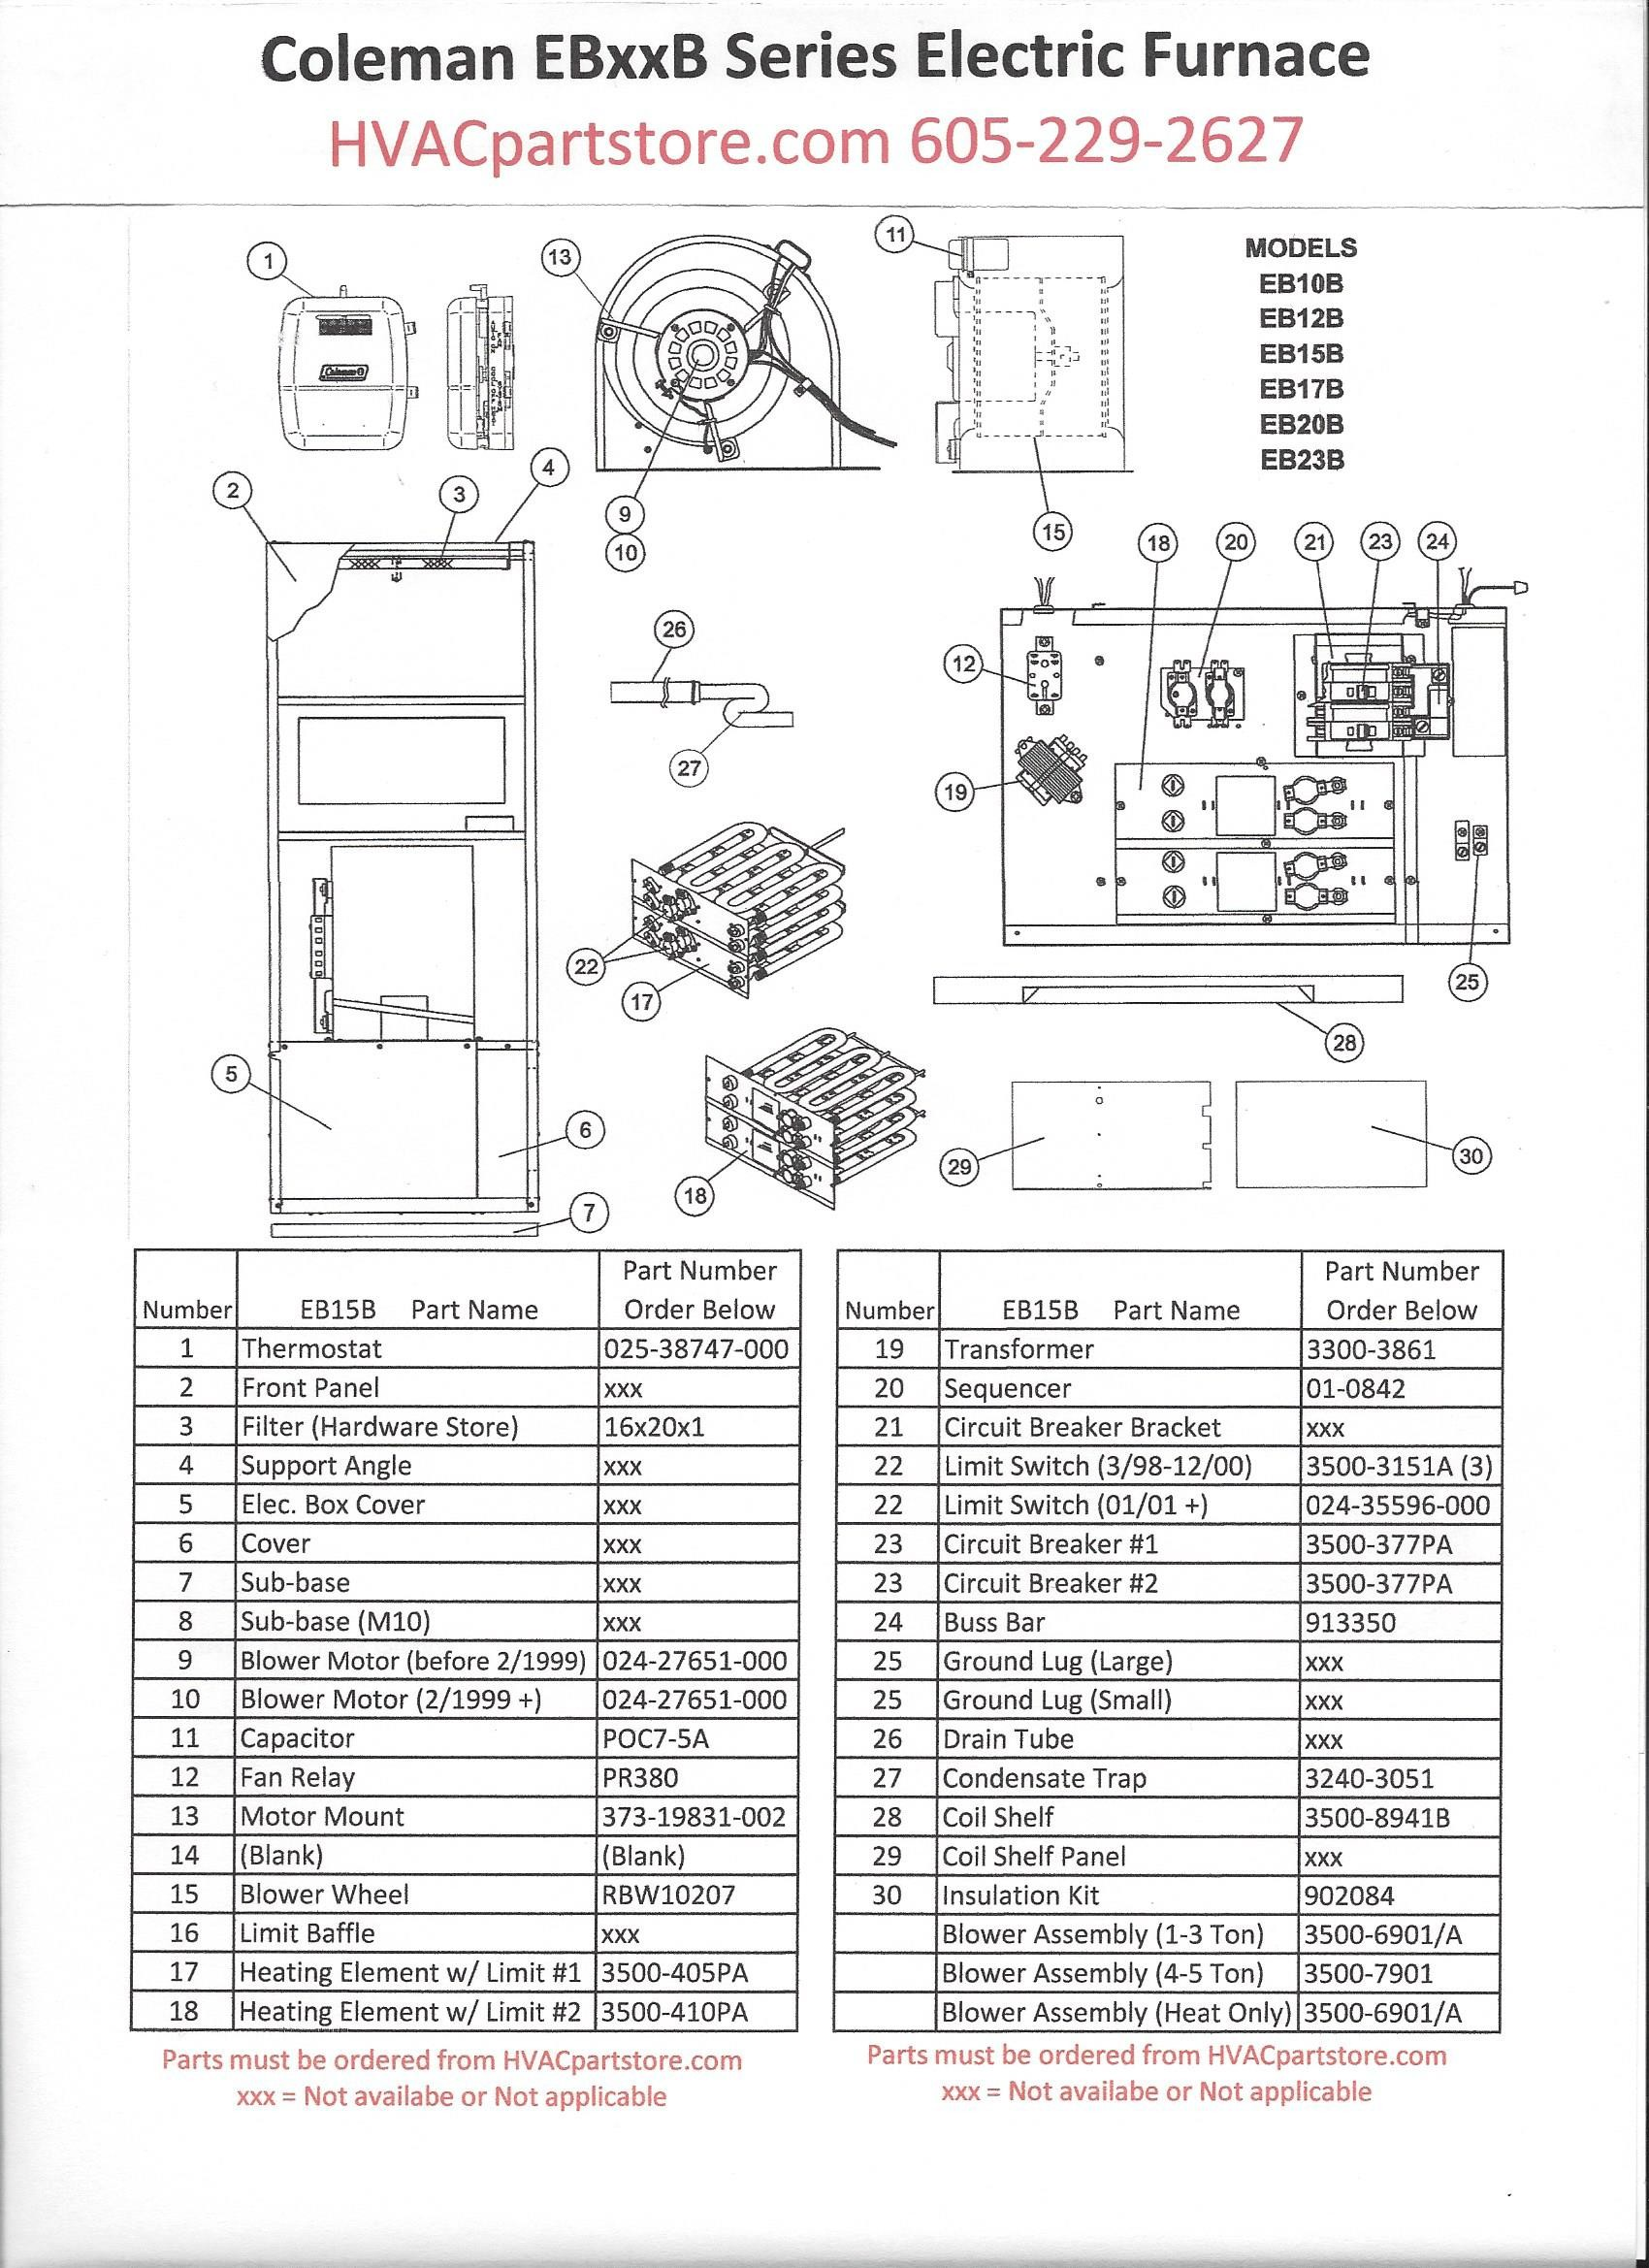 Electric Furnace Wiring Diagram Intertherm Electric Furnace Wiring Diagram Lorestanfo Of Electric Furnace Wiring Diagram